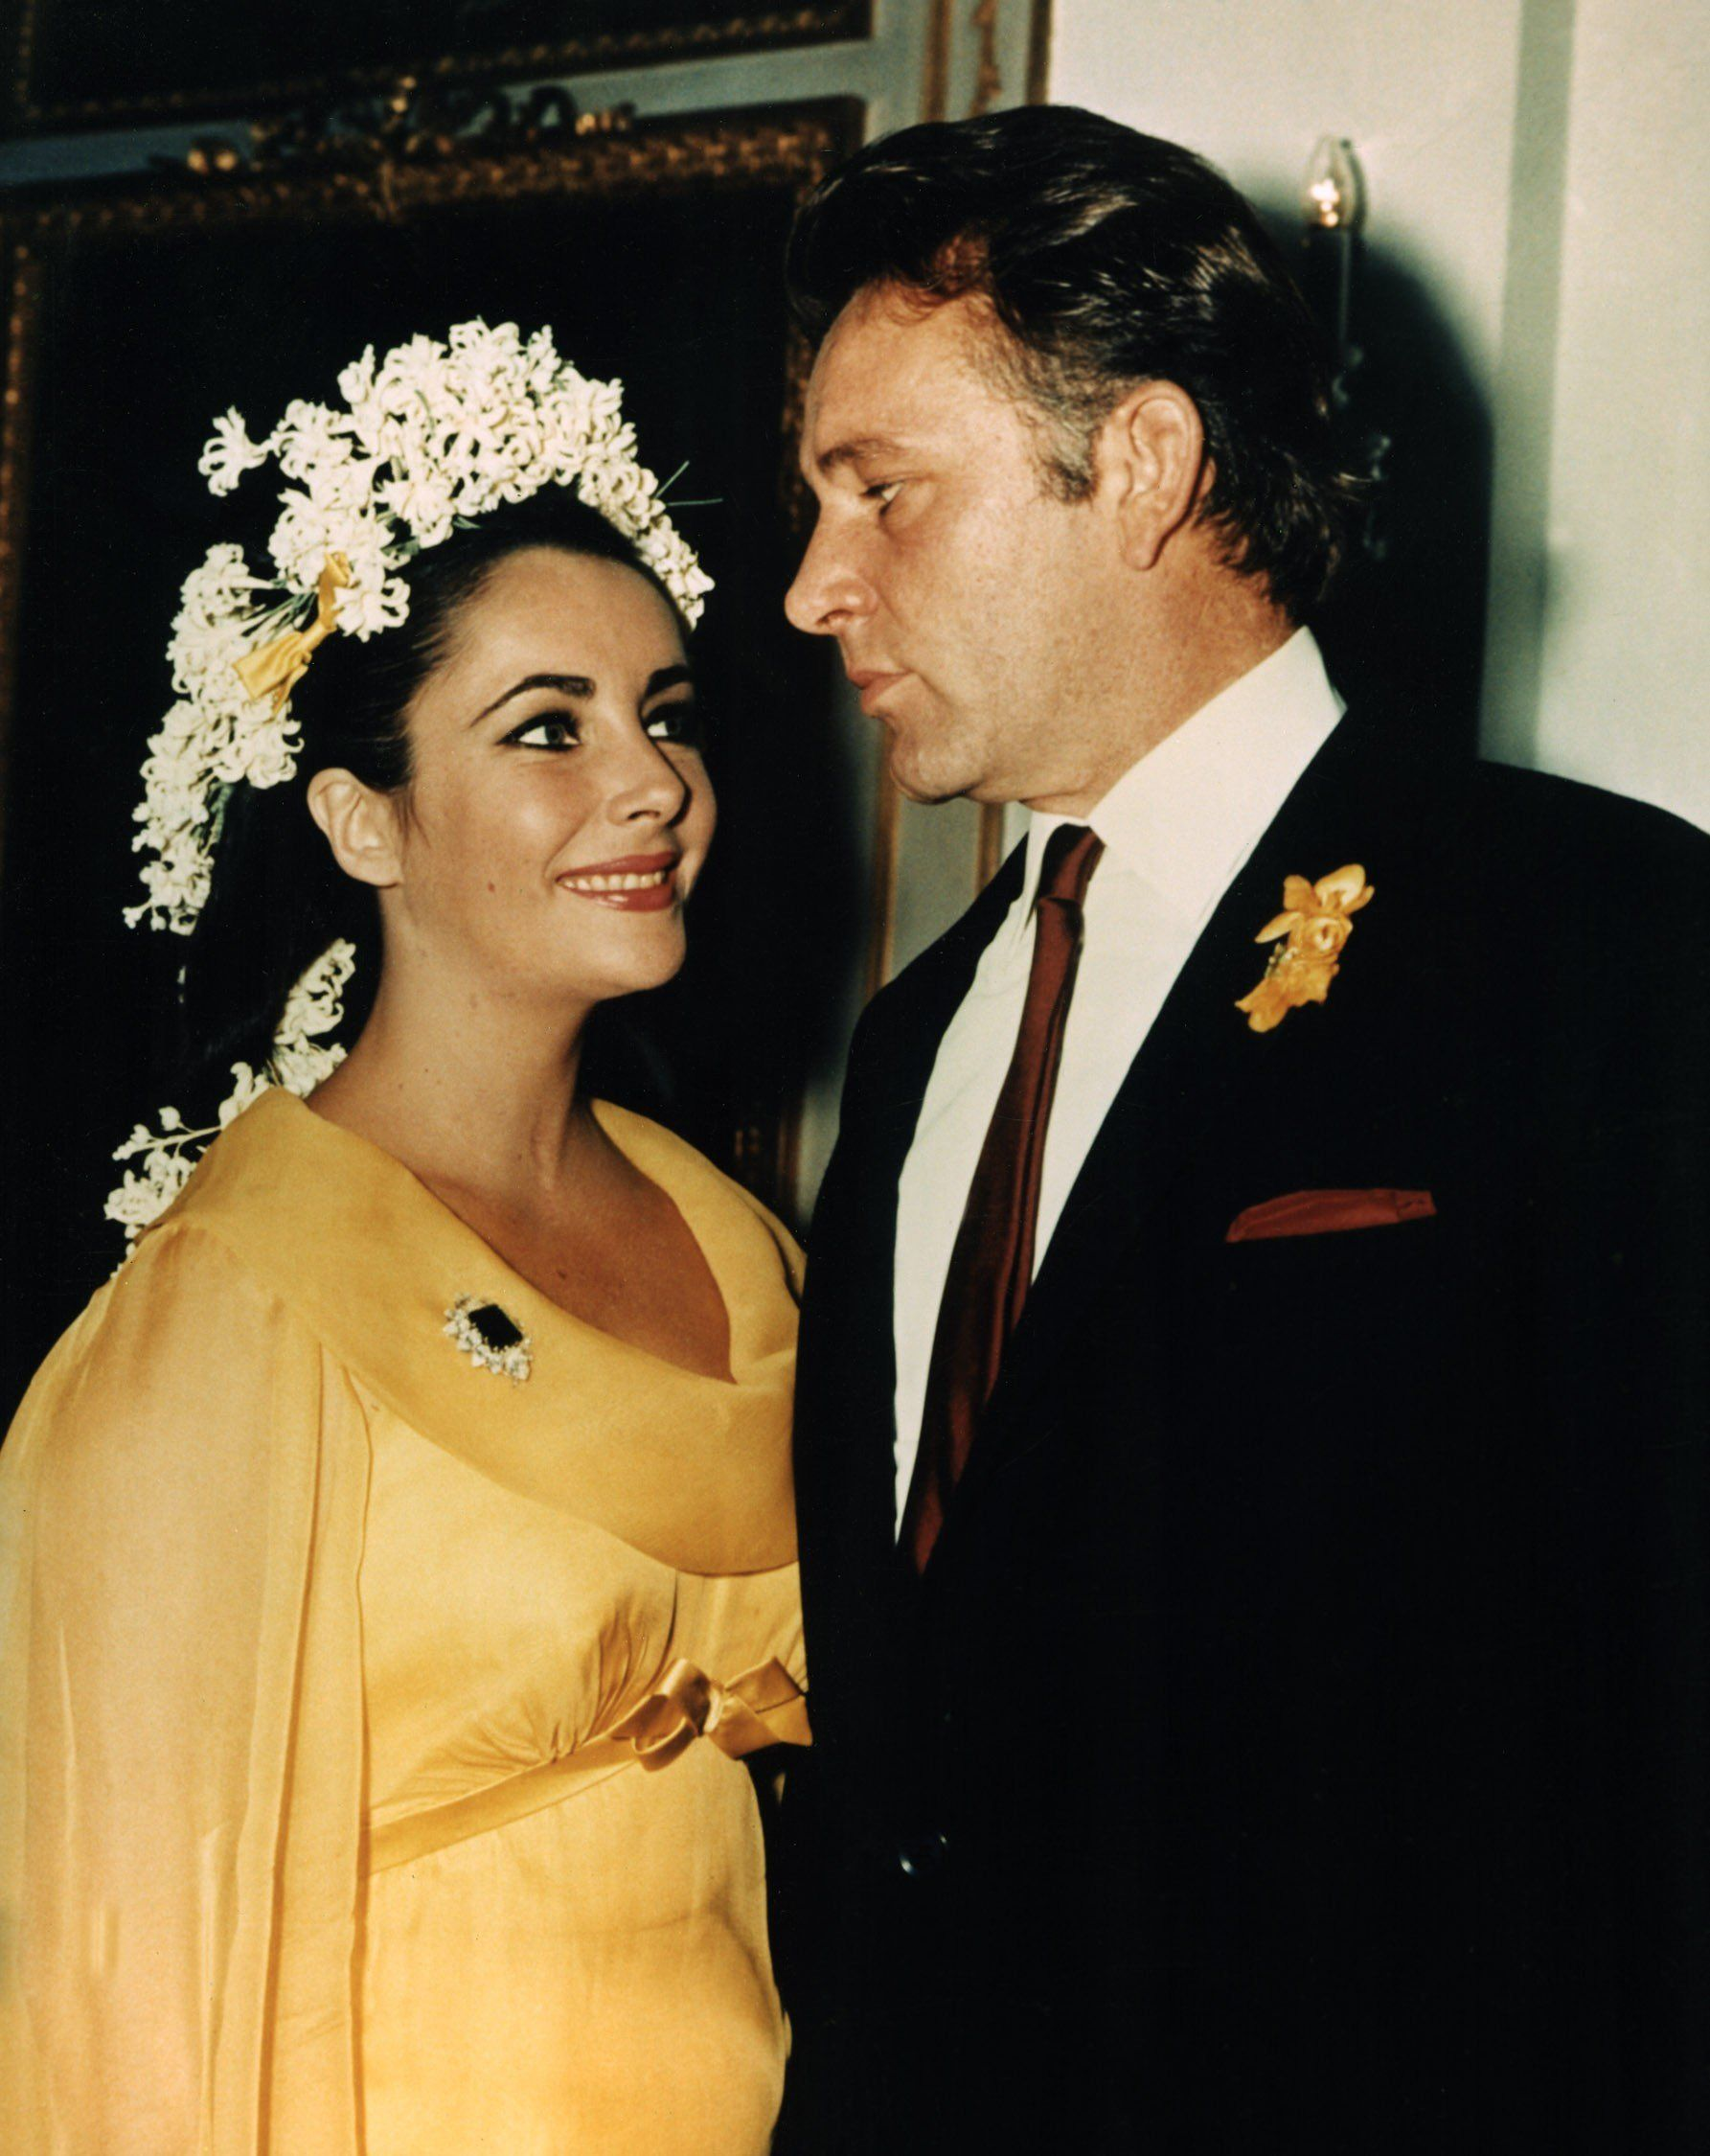 Elizabeth Taylor This Violet Eyed English Actress Wed Richard Burton For The First Time In 196 Celebrity Bride Celebrity Wedding Dresses Celebrity Weddings